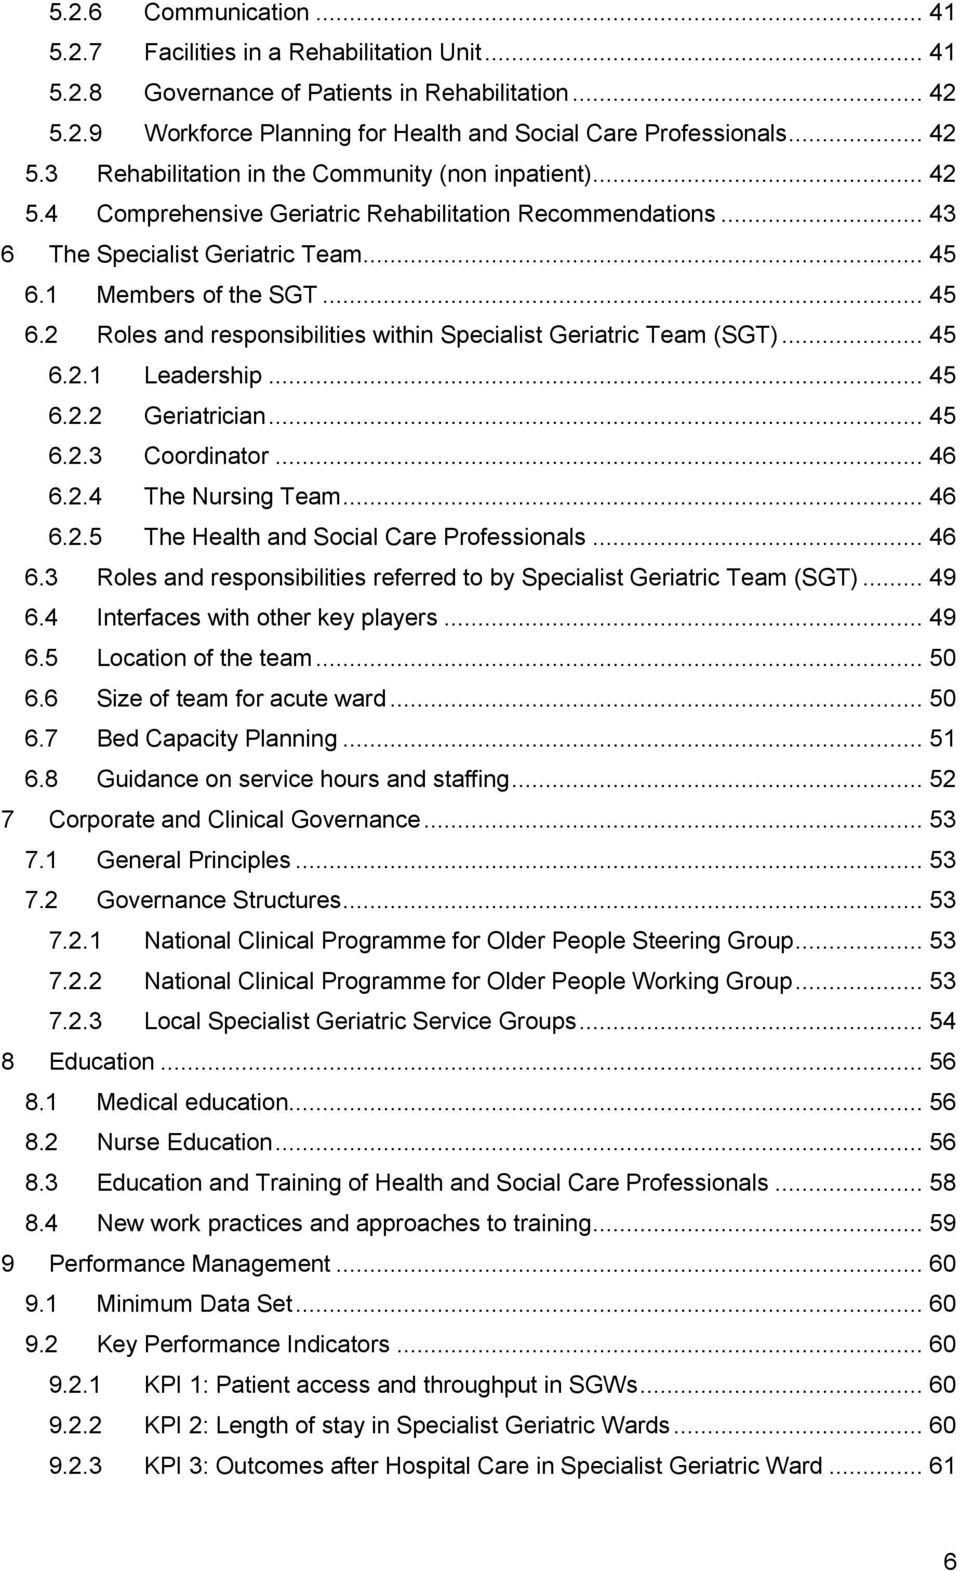 .. 45 6.2.1 Leadership... 45 6.2.2 Geriatrician... 45 6.2.3 Coordinator... 46 6.2.4 The Nursing Team... 46 6.2.5 The Health and Social Care Professionals... 46 6.3 Roles and responsibilities referred to by Specialist Geriatric Team (SGT).